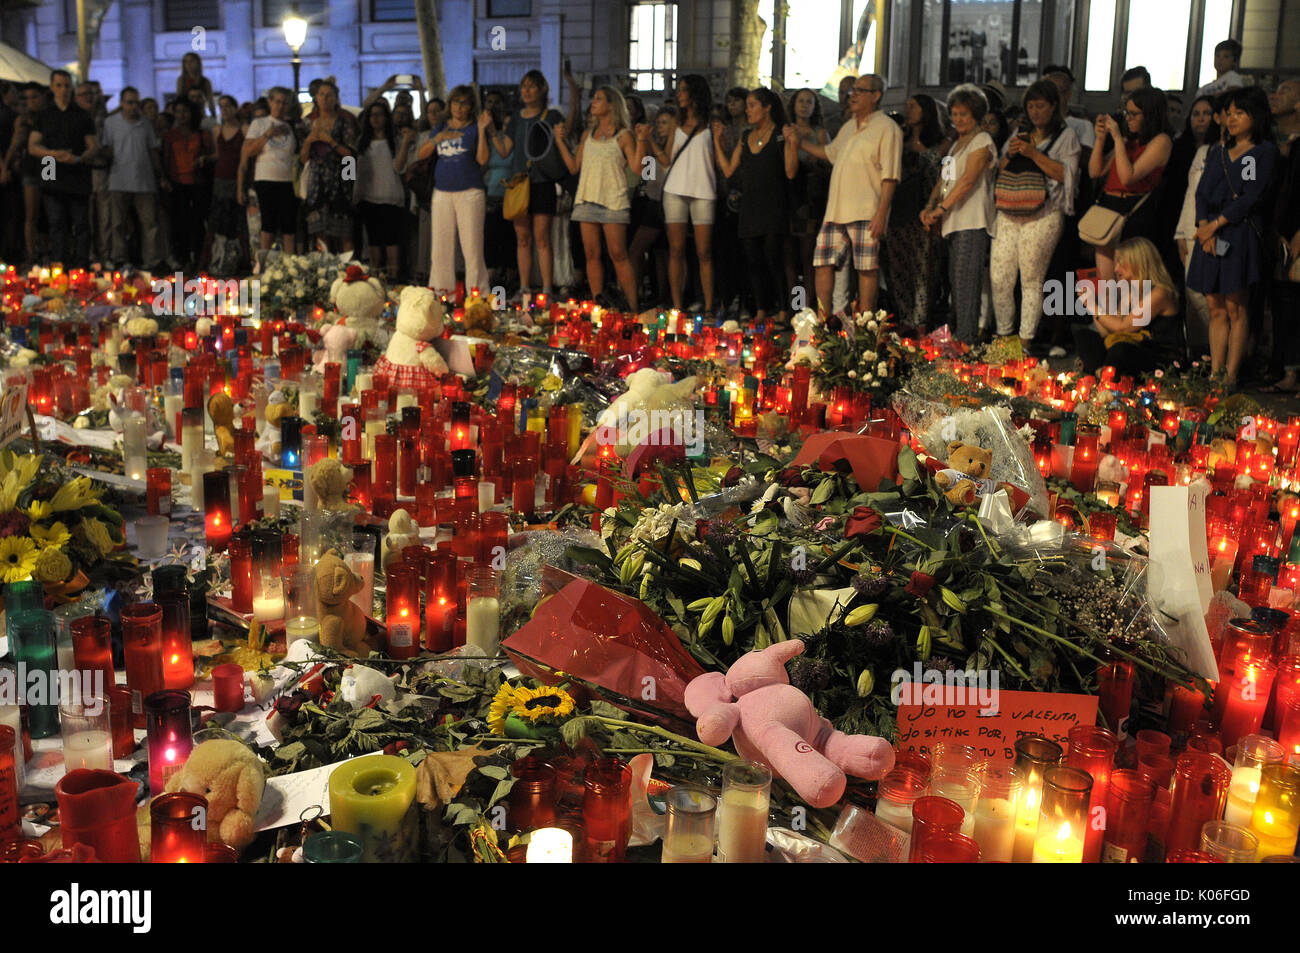 Las Ramblas, Barcelona, Spain. 20th  August 2017.People bring flowers, light up candles and leave dolls prayers and meditations At the beginning  of the Ramblas to pay  tribute  to the victims of  the terrorist attack in Barcelona. Credit: fototext/Alamy Life News - Stock Image